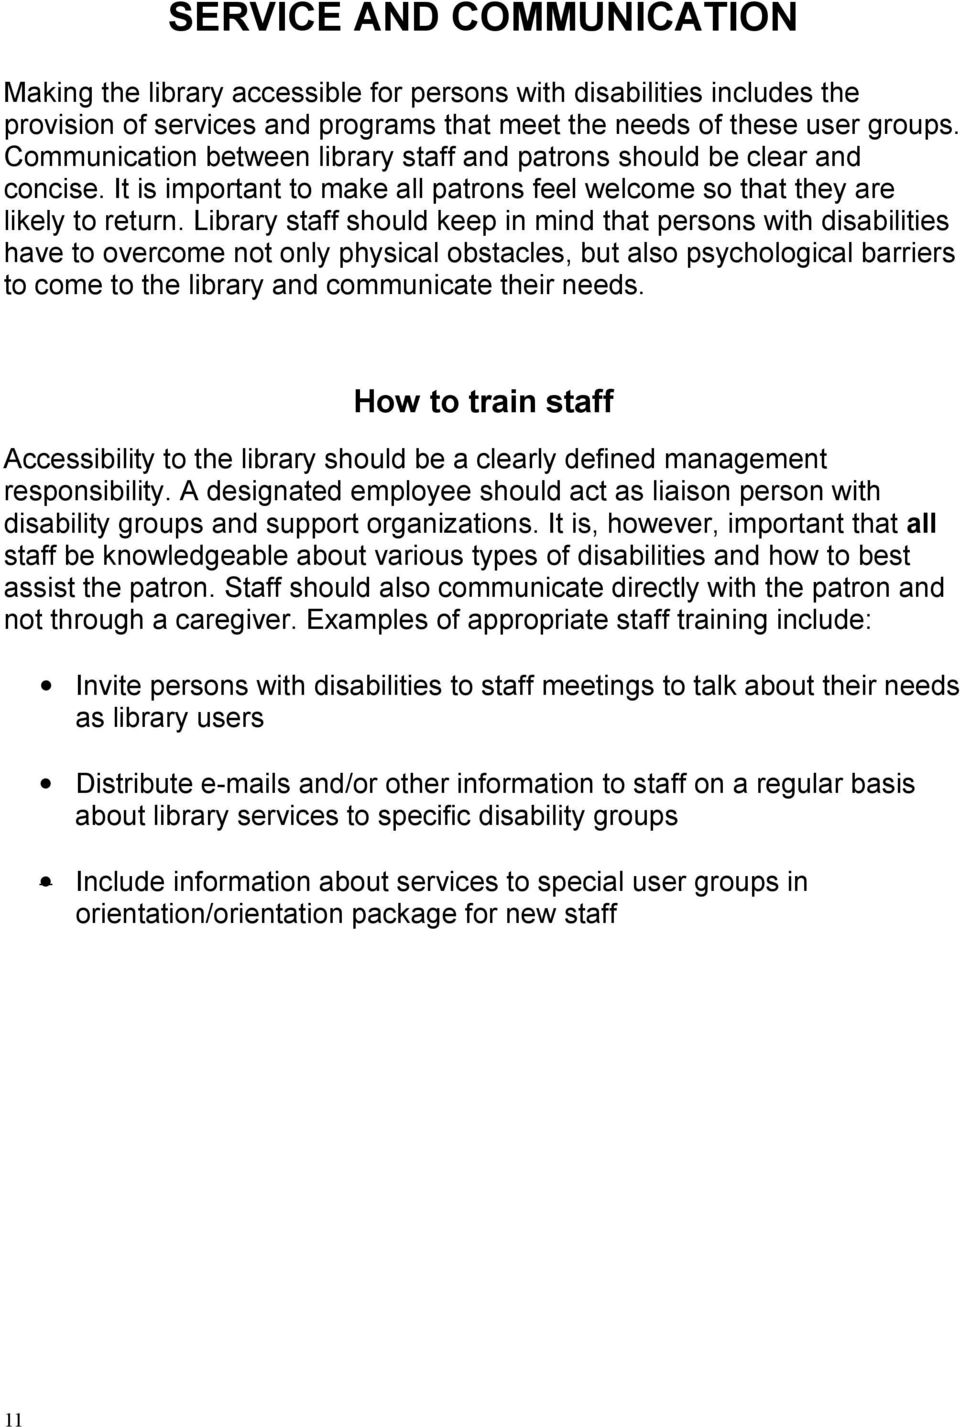 Library staff should keep in mind that persons with disabilities have to overcome not only physical obstacles, but also psychological barriers to come to the library and communicate their needs.